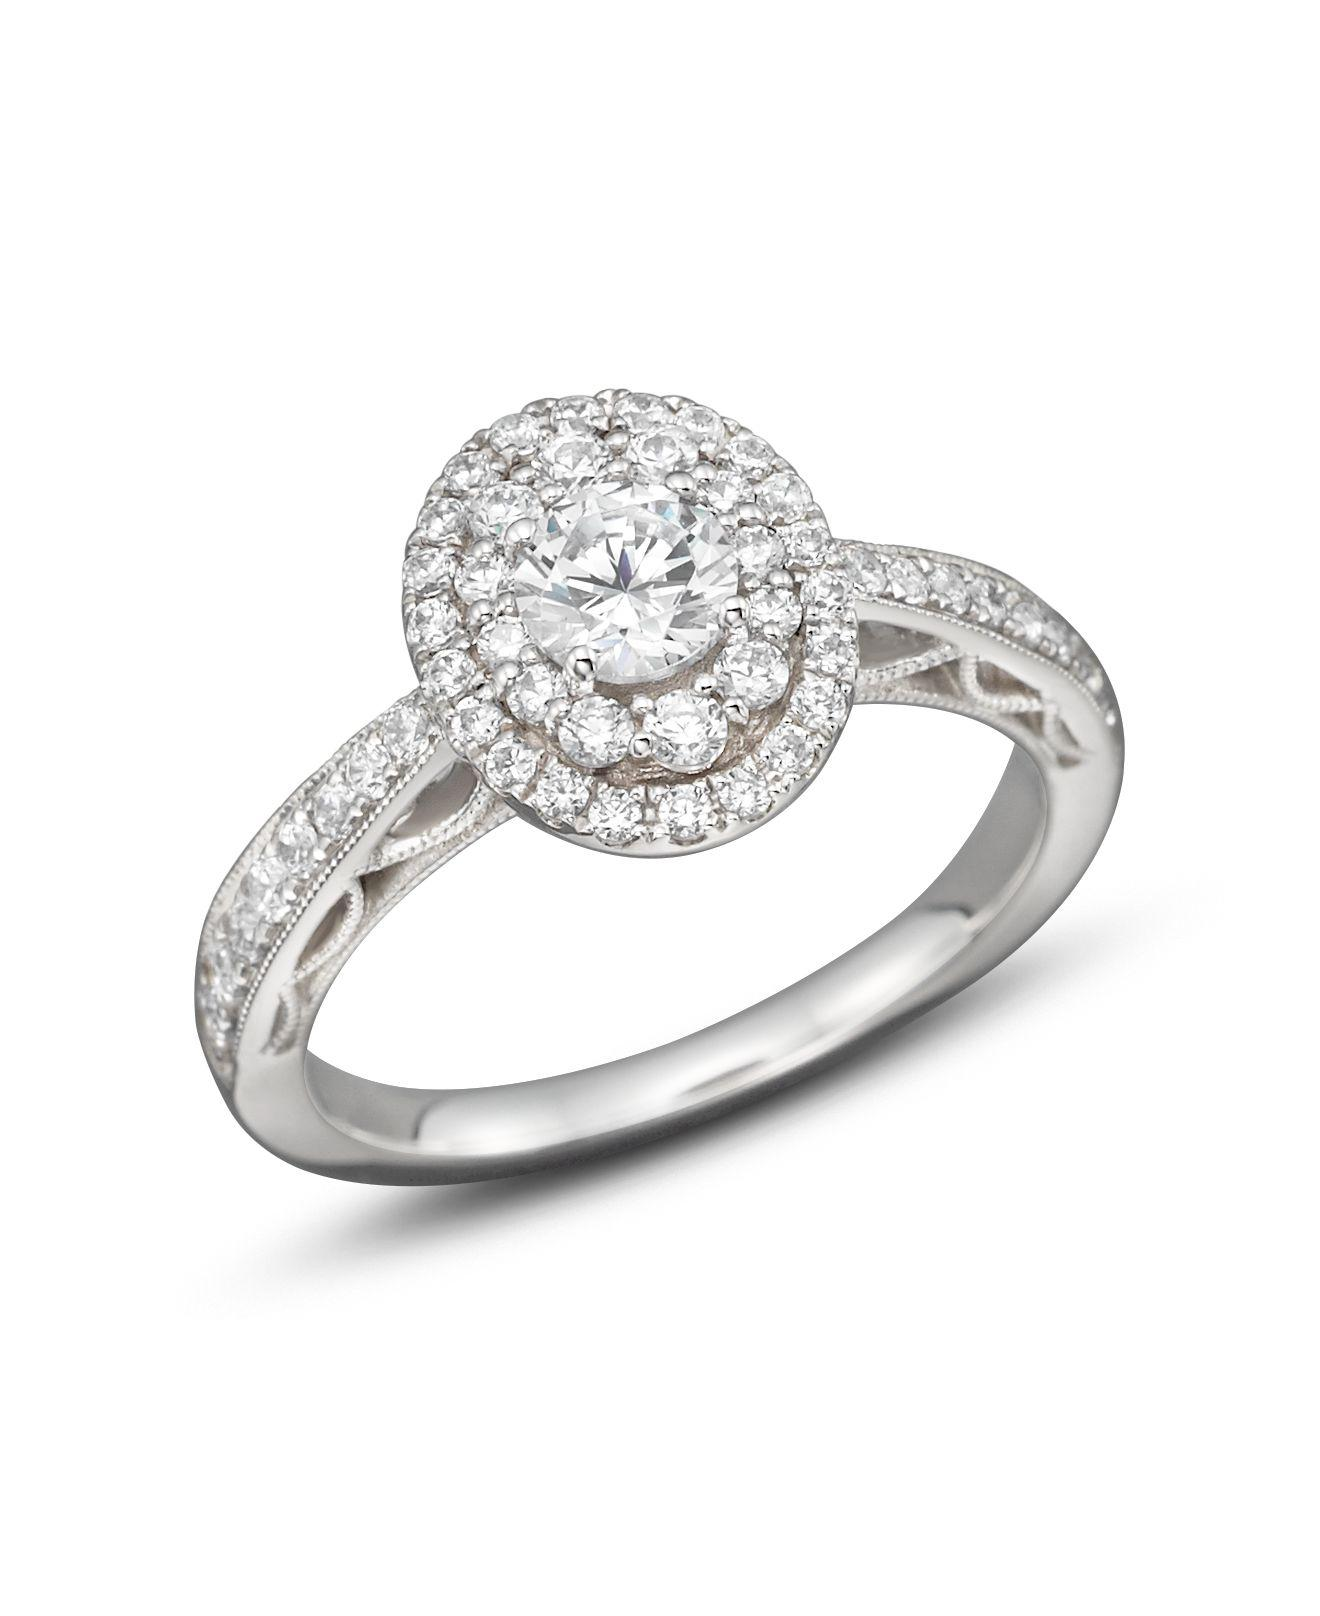 Lyst Bloomingdales Diamond Engagement Ring In 14k White Gold 10